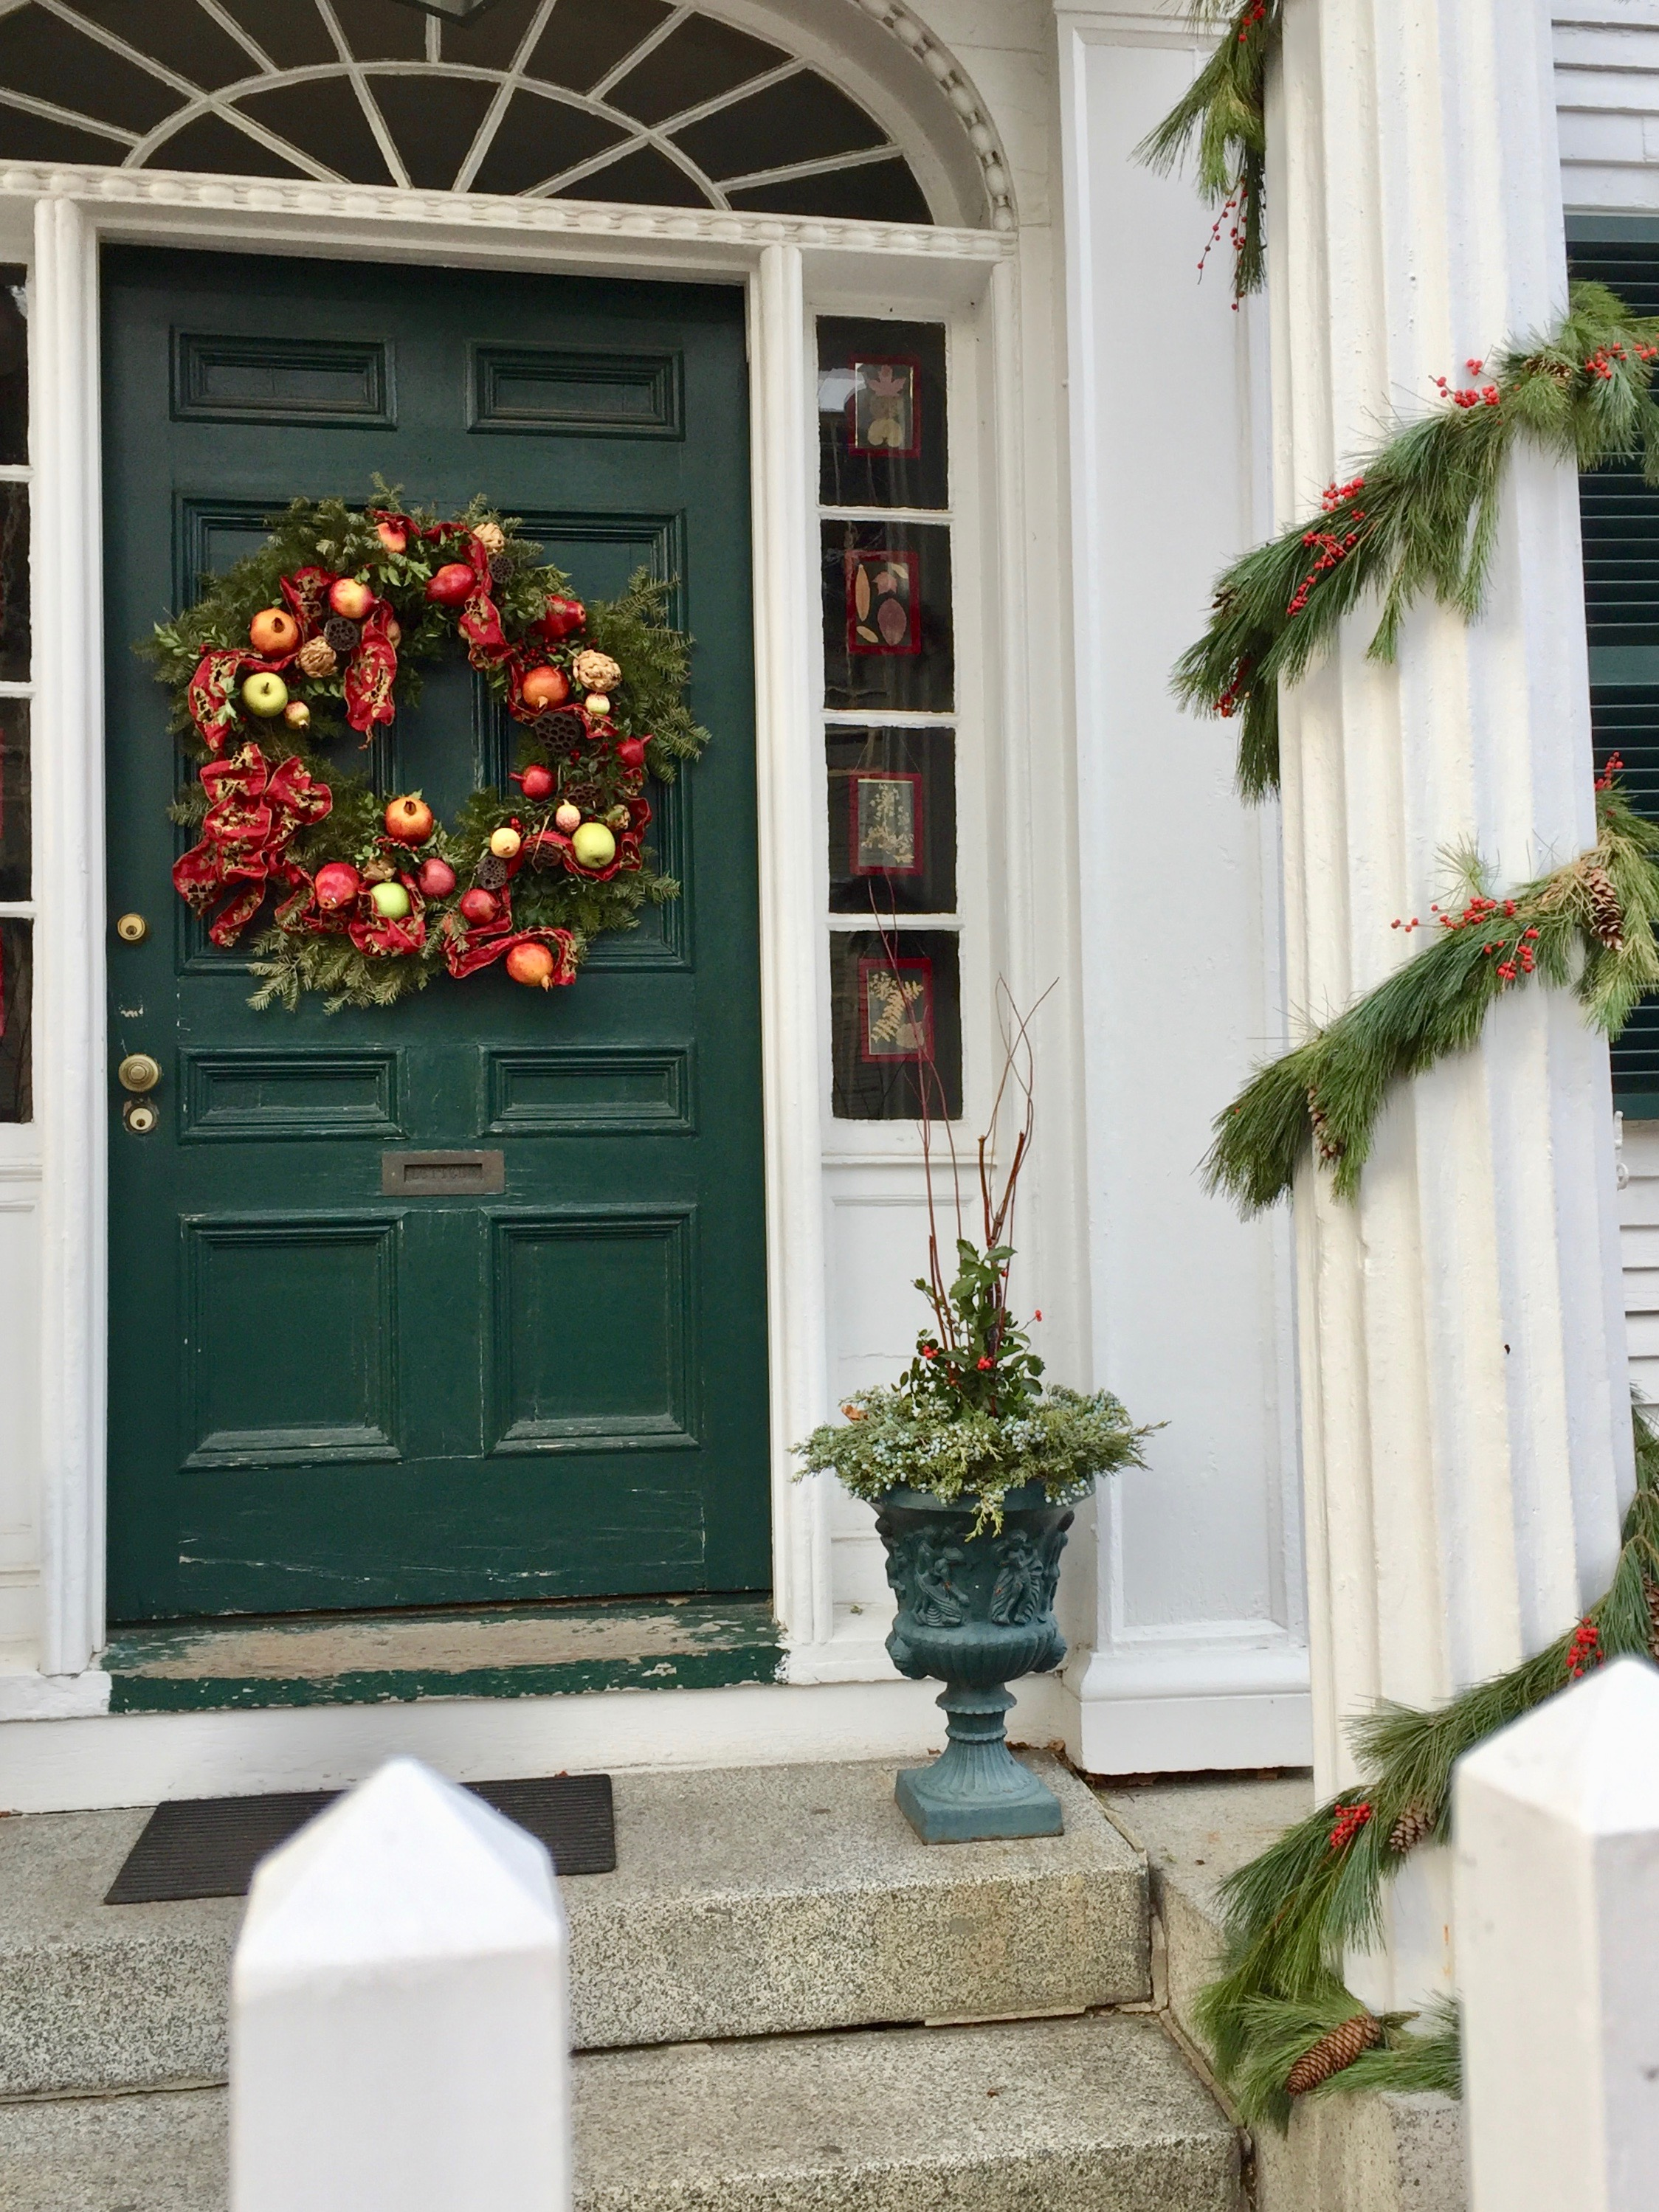 Christmas Wreath ideas from New England - portsmouth nh 8.jpg